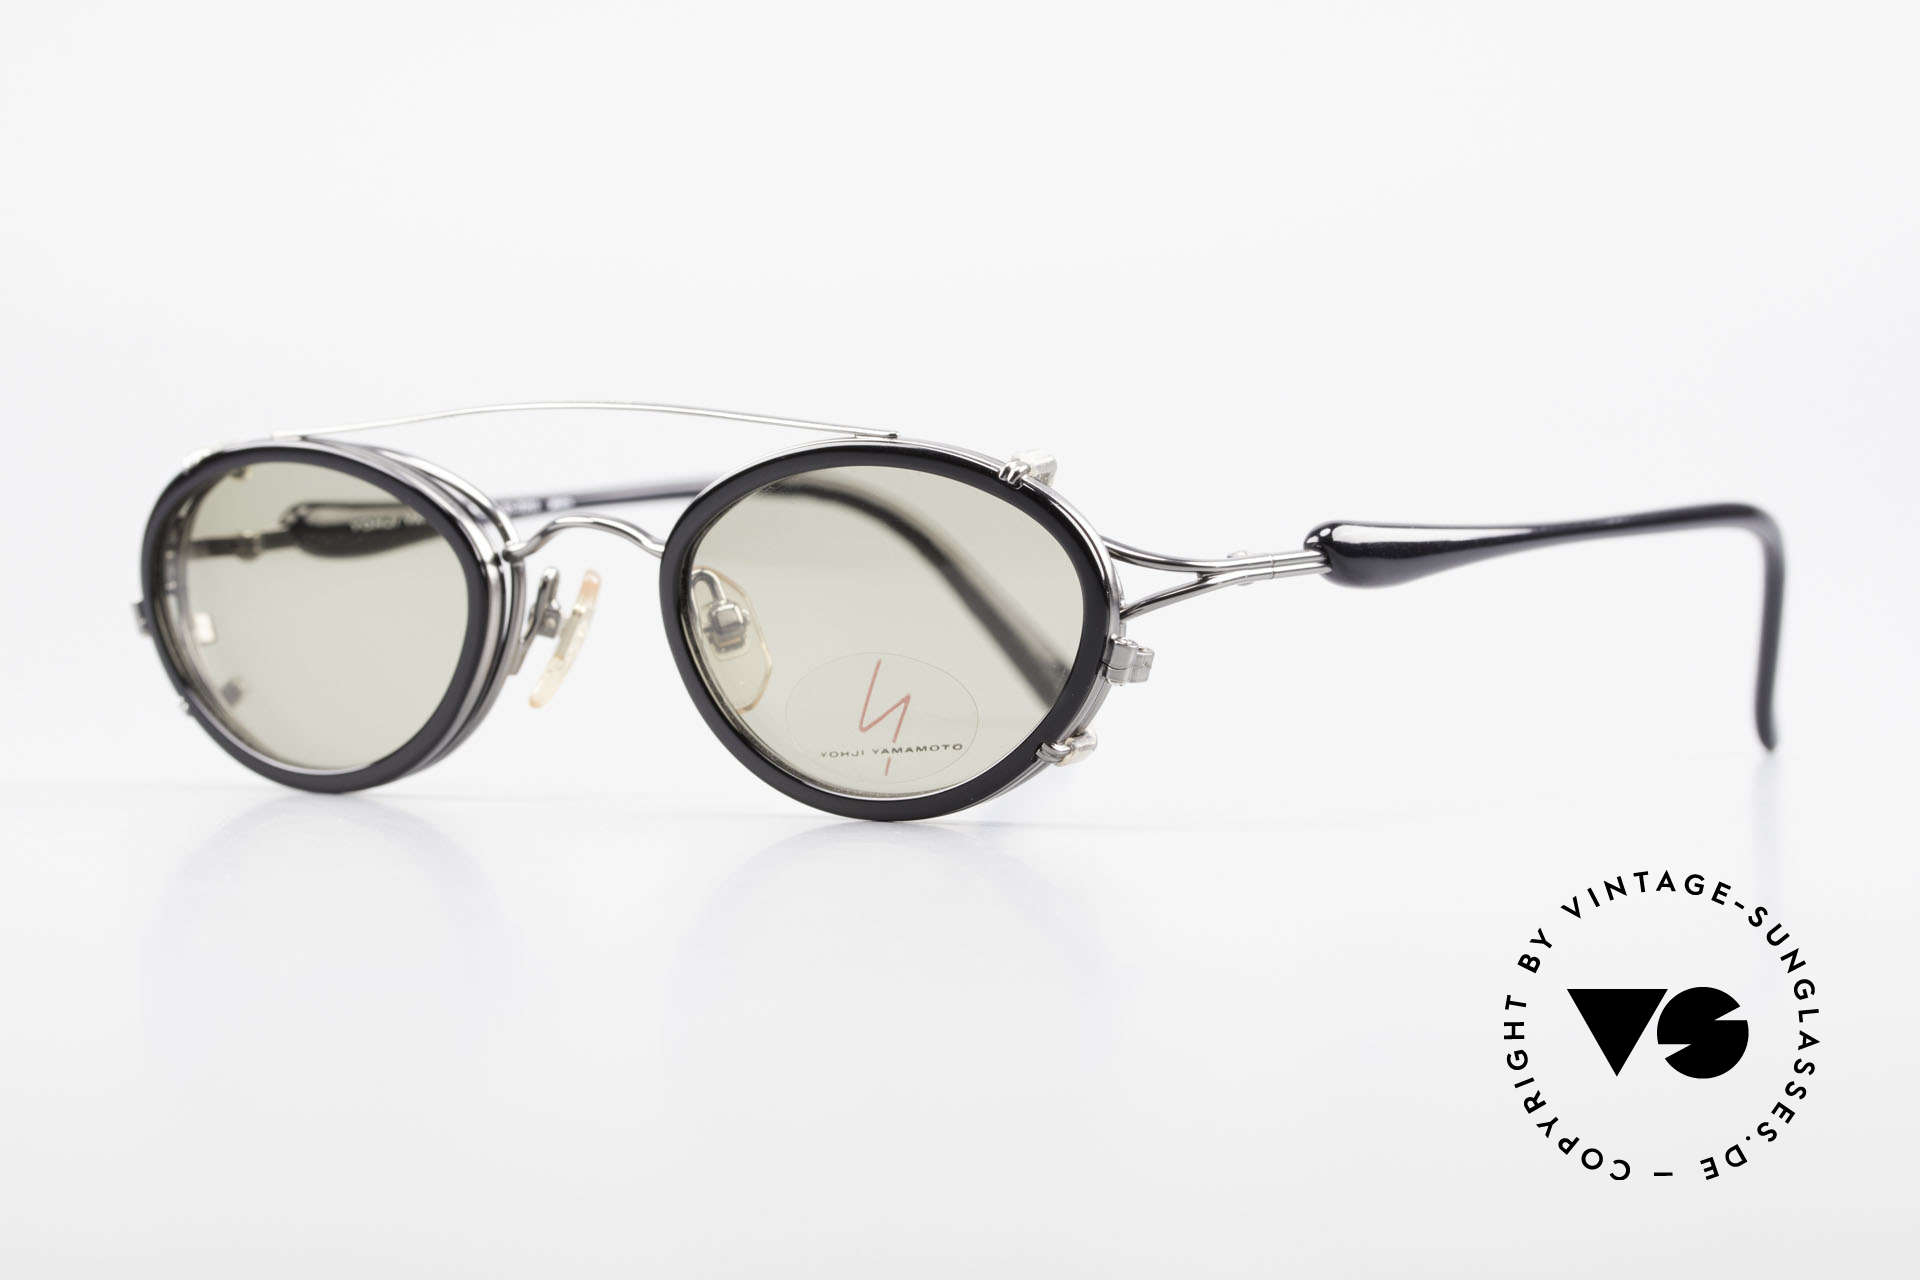 Yohji Yamamoto 51-7210 No Retro Shades Clip-On 90's, fantastic frame finish (gunmetal) with black temples, Made for Men and Women